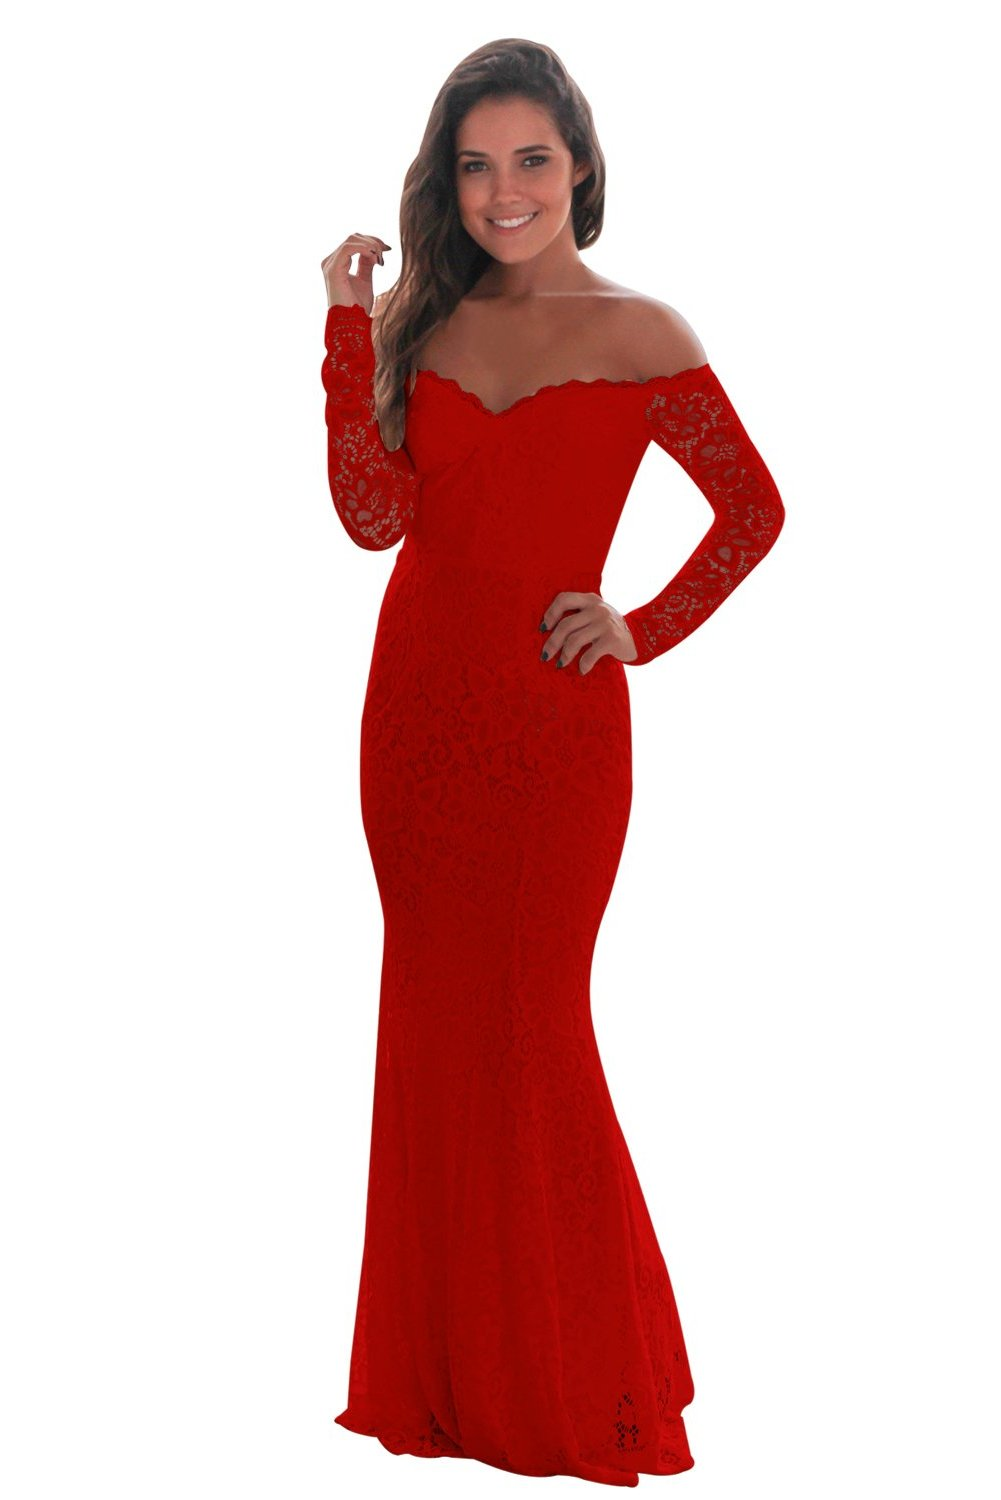 Her Fashion Red Crochet Off Shoulder Maxi Evening Party Dress